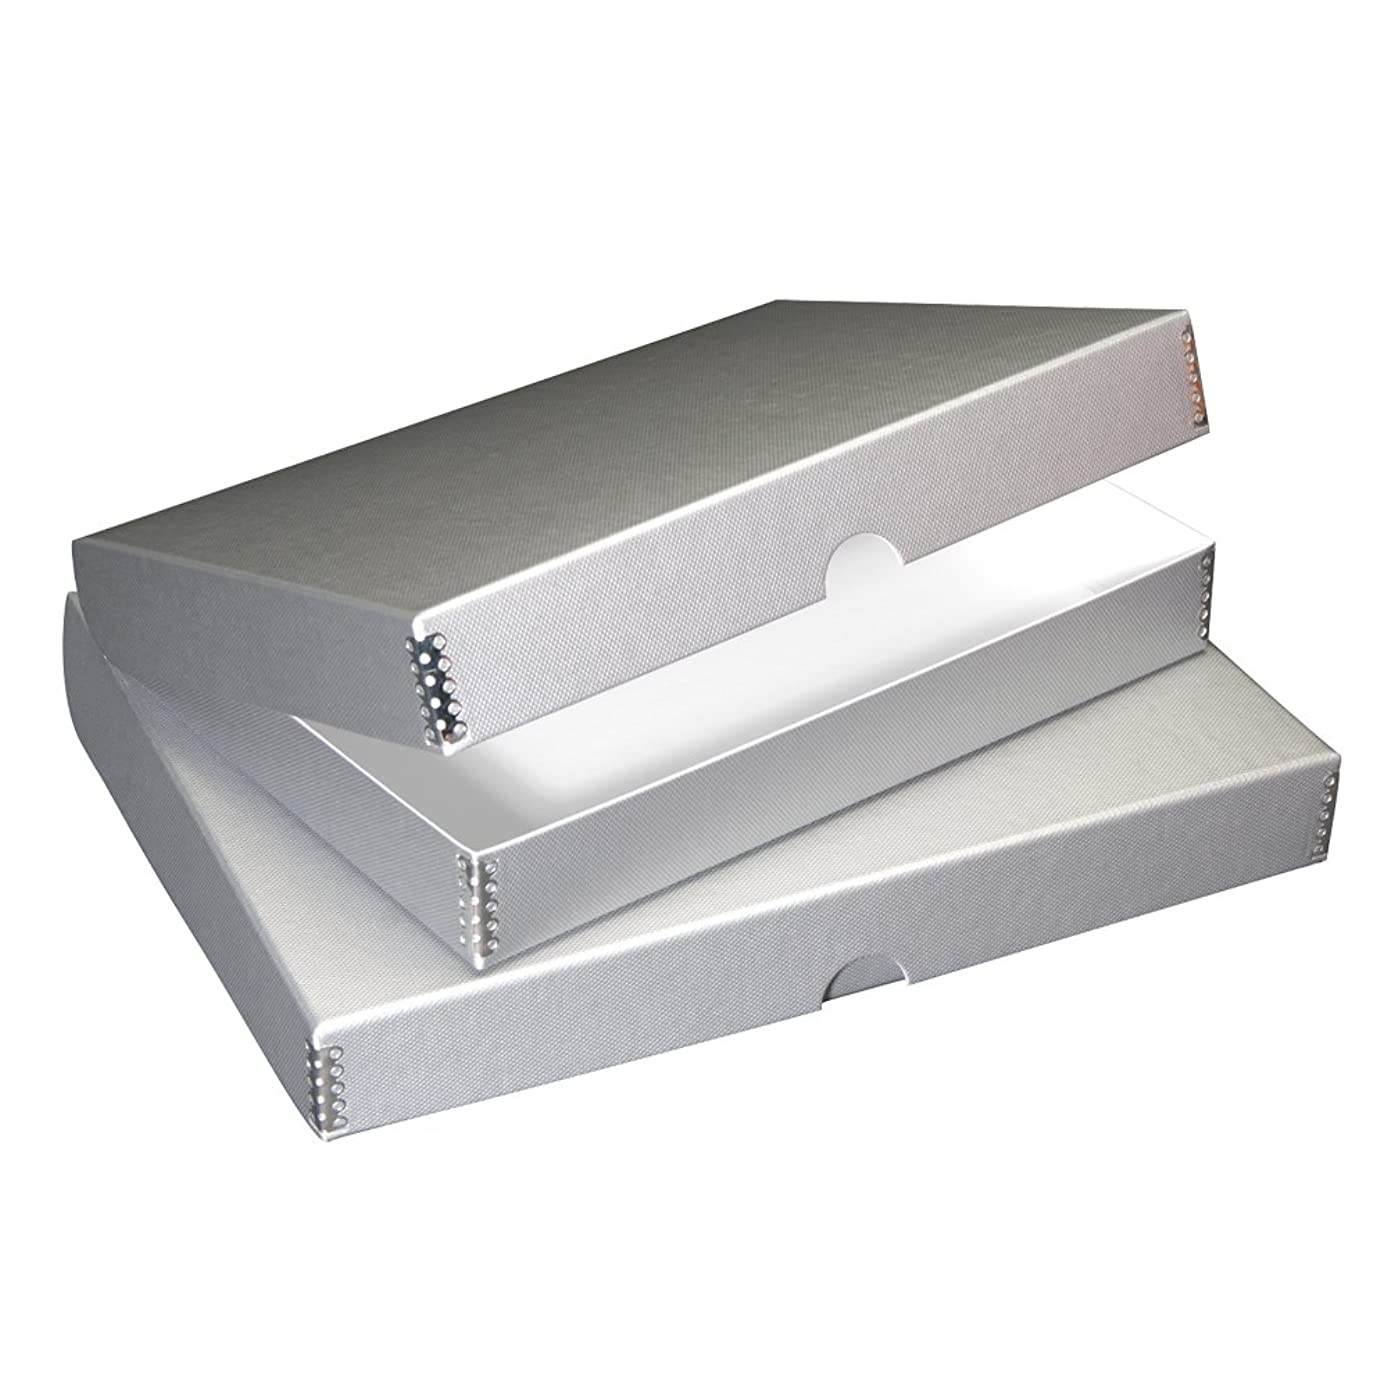 Lineco Textured Metallic Folio Storage Box, Acid-Free with Metal Edges, 11.5 X 14.5 X 1.75 inches, Silver (717-4114)